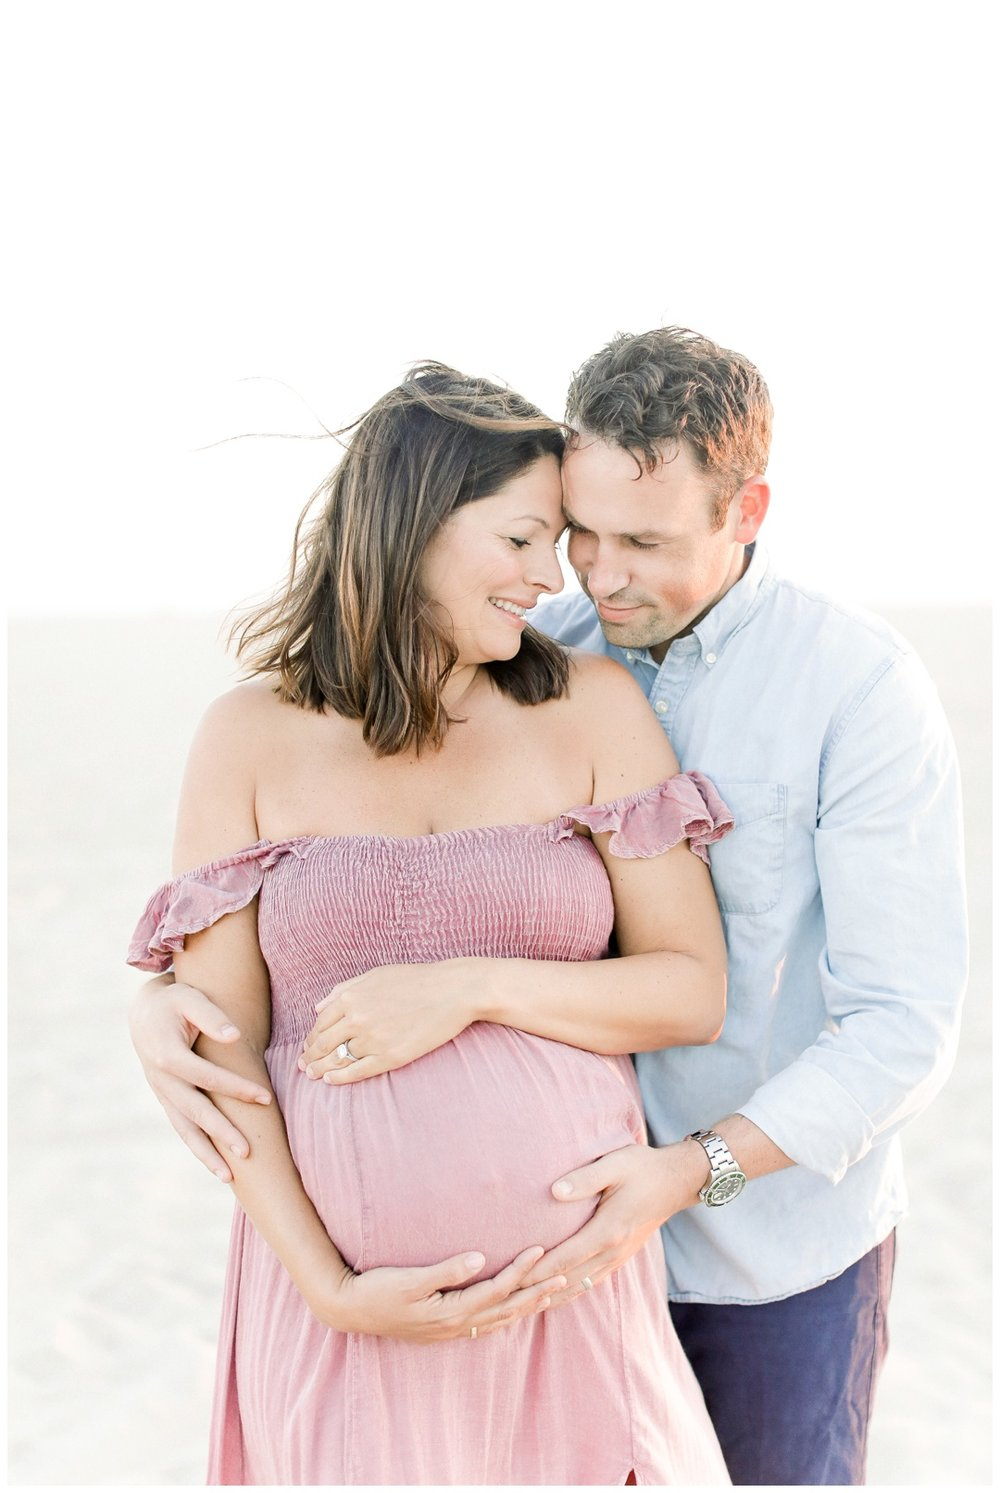 Newport_Beach_Maternity_Photographer_Newport_Beach_Newborn_Photography_Orange_County_Newborn_Photographer_Cori_Kleckner_Photography_Orange_County_in-home_Photography__2159.jpg